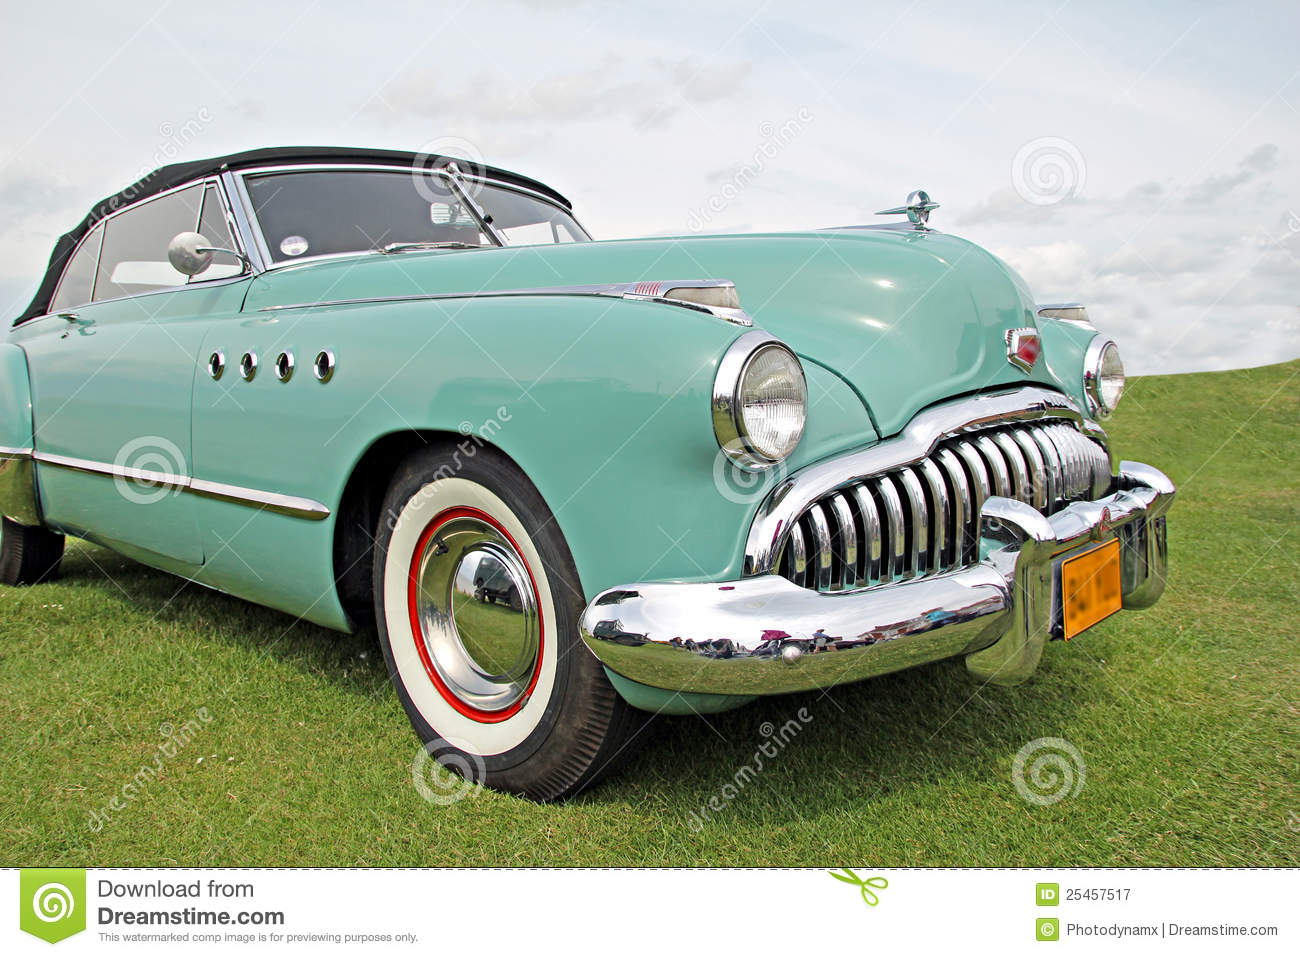 American buick vintage car stock image. Image of cars - 25457517